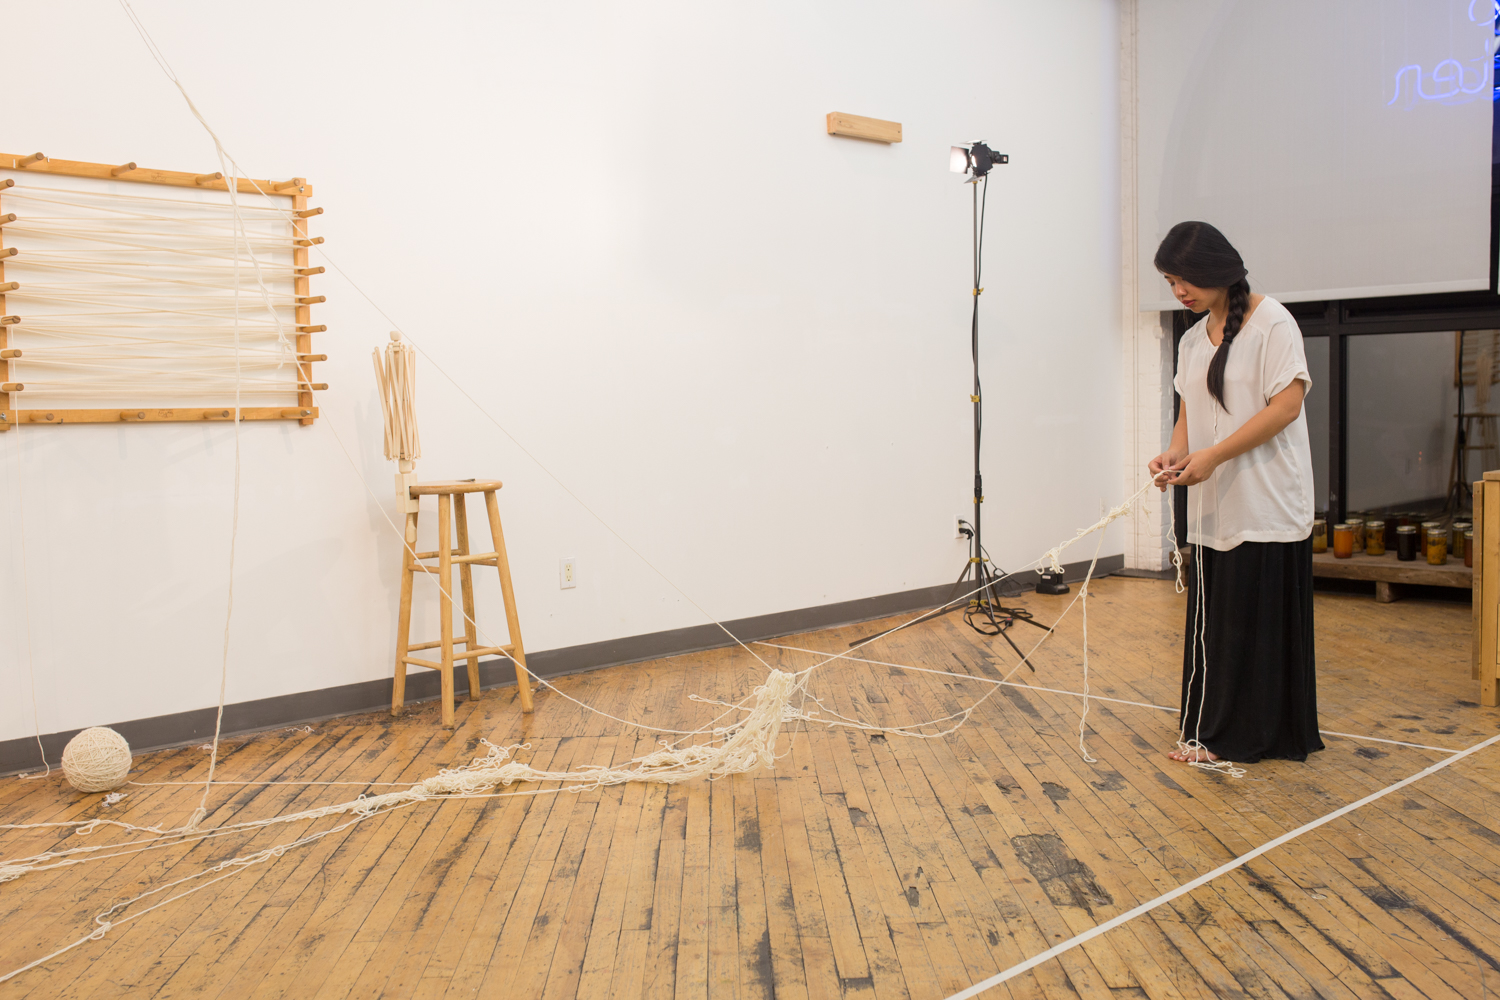 The artist uses the one strand of suspended, knotted yarn as an anchor to untangle the rest of the heap of yarn. The ball of untangled yarn is on the side.